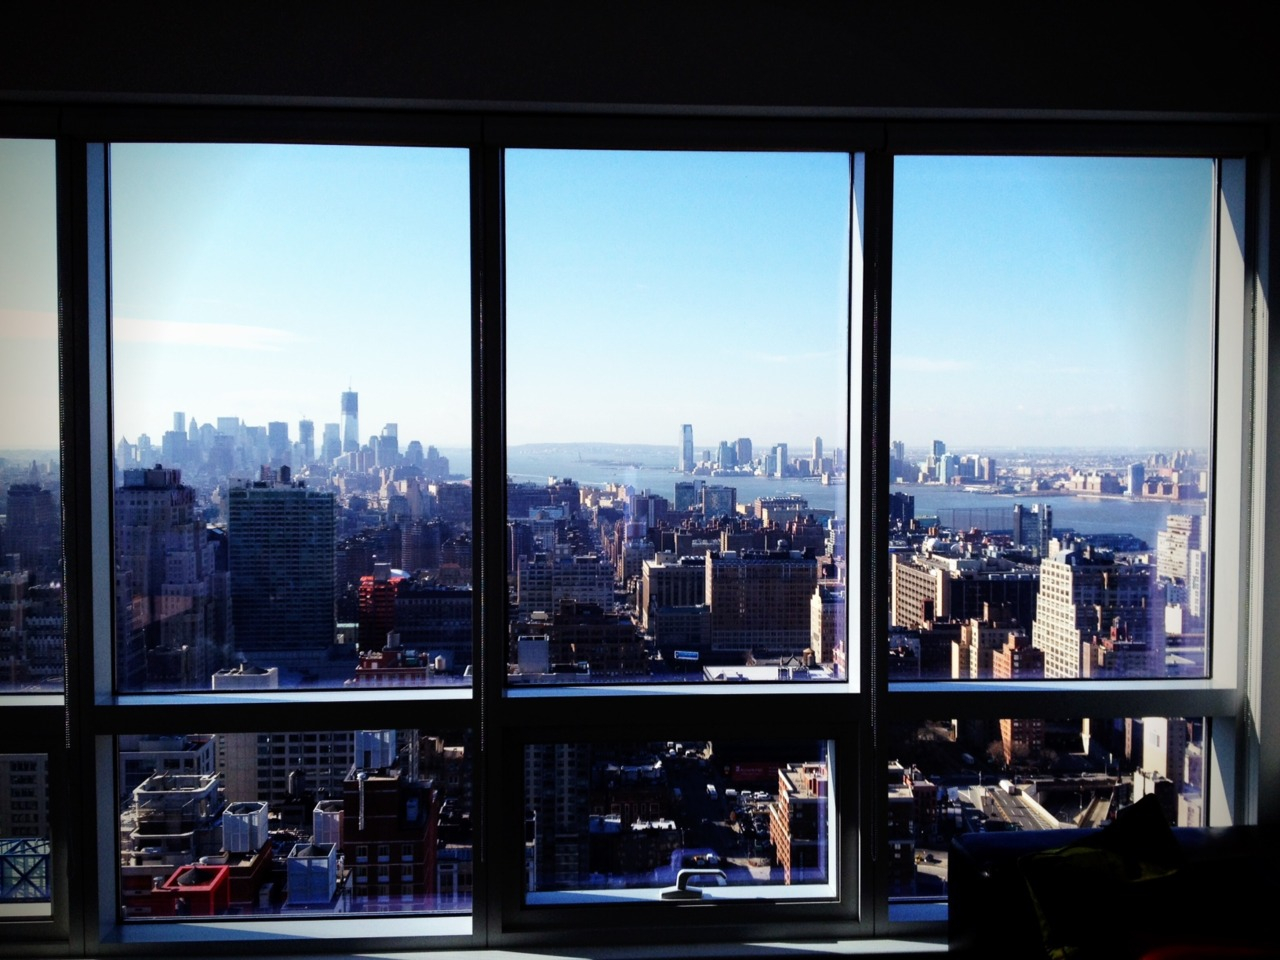 View from the apt I'm staying at this week in NYC. I'm here attending the Q conference… this year with Eugene Peterson. It's been a great time of rest, hearing God's voice, meeting old friends, and recharging for the adventure. God is good.